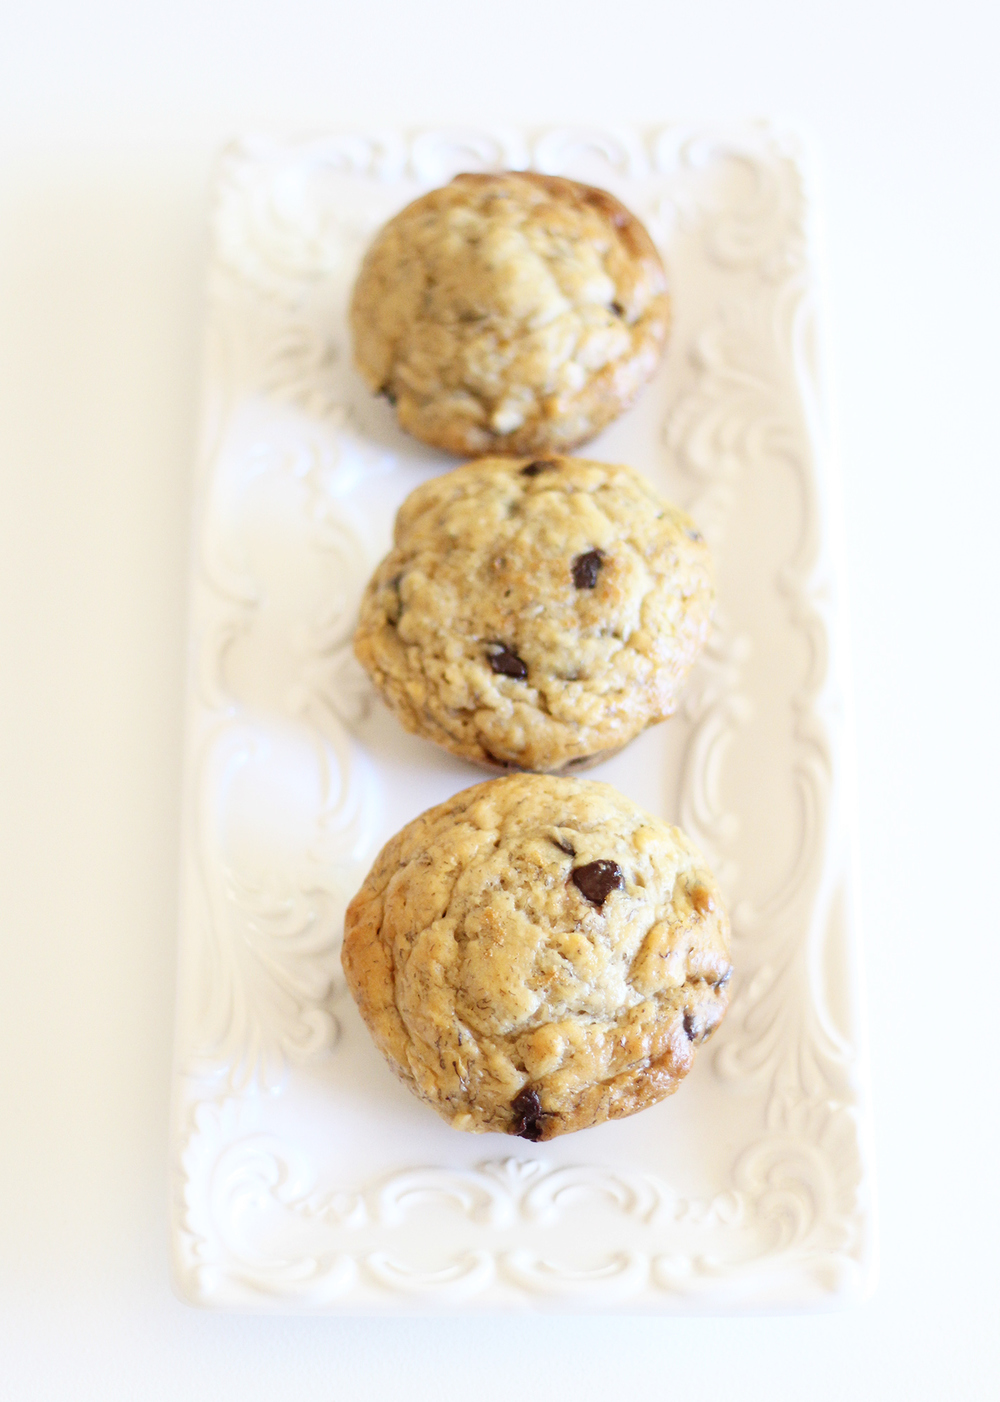 The tastiest skinny banana chocolate chip muffins